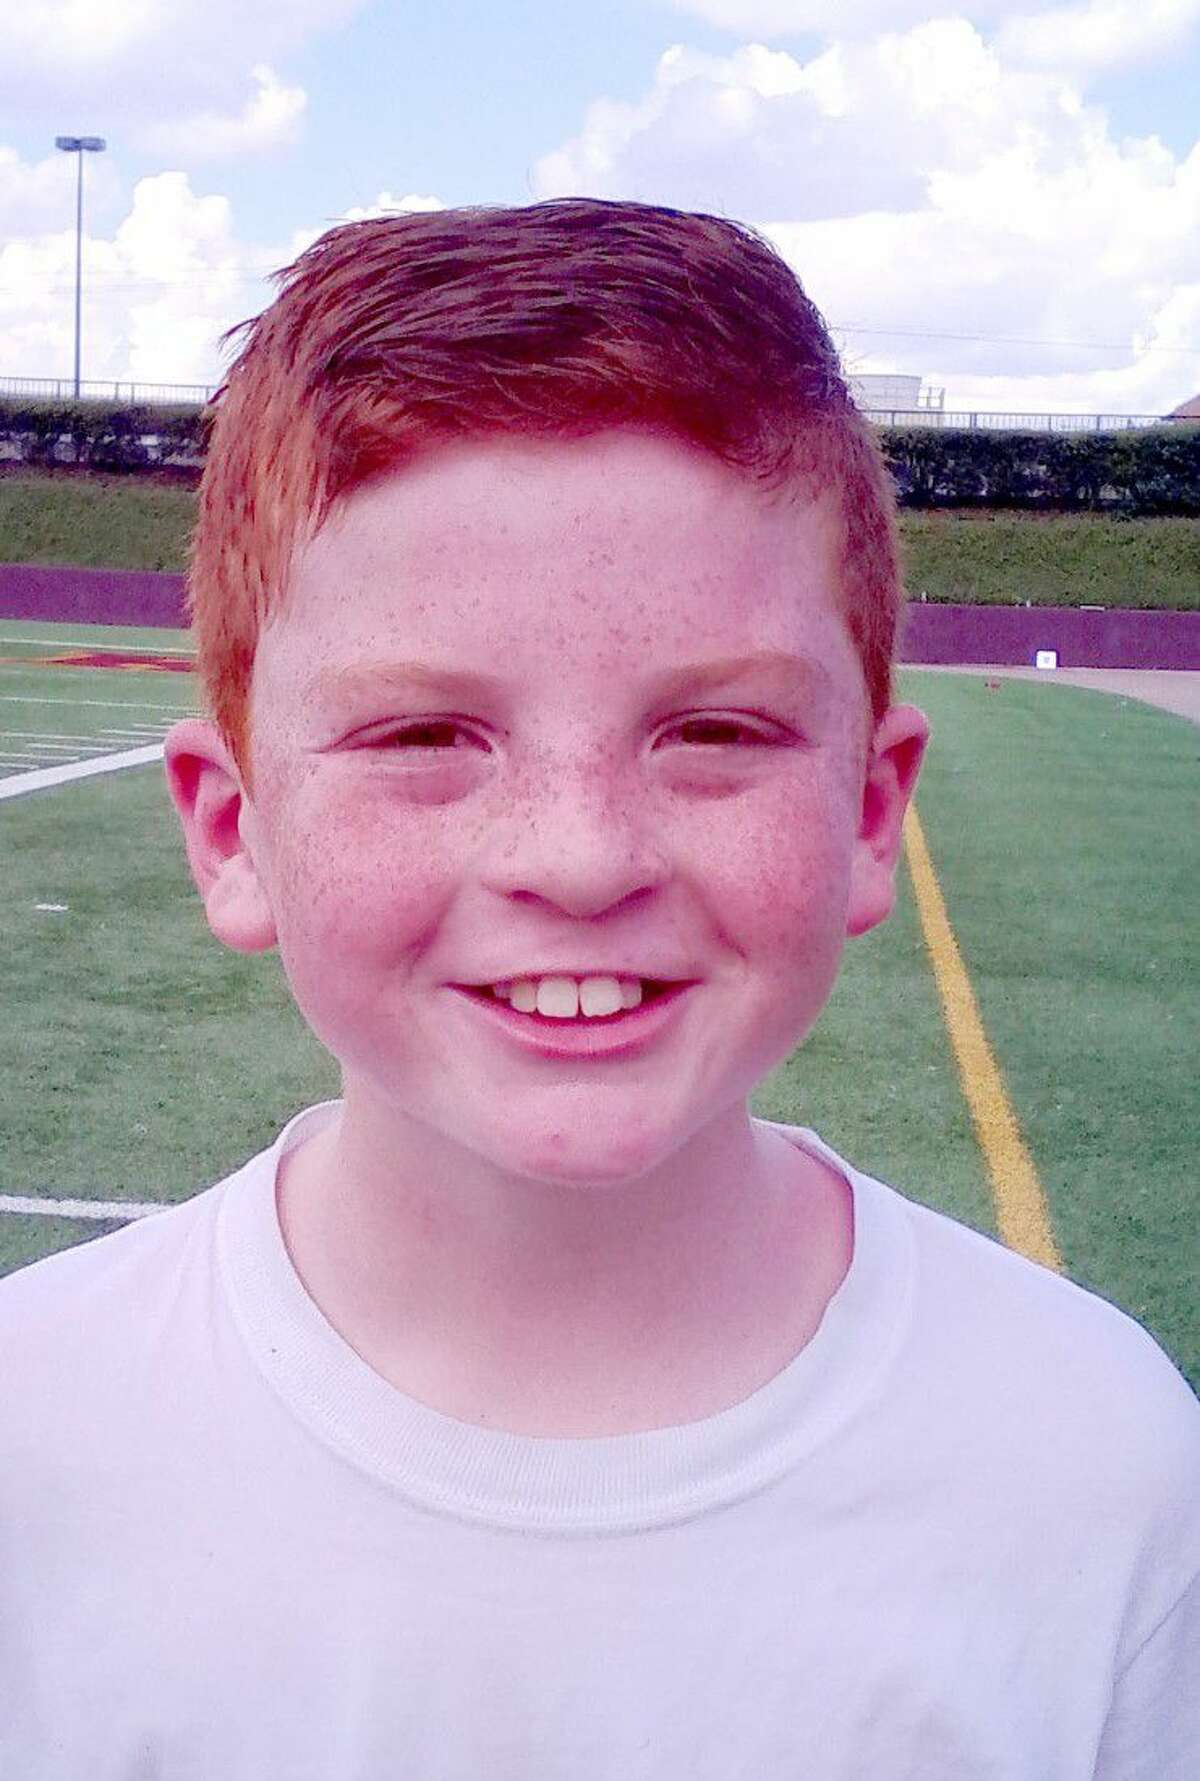 Jax Venetoulias may have become the first TIFI football player ever to attempt a field goal. The 10-year-old put plenty of height and distance on the kick but kicking from the left hash mark, he watched the attempt sail just past the left upright.